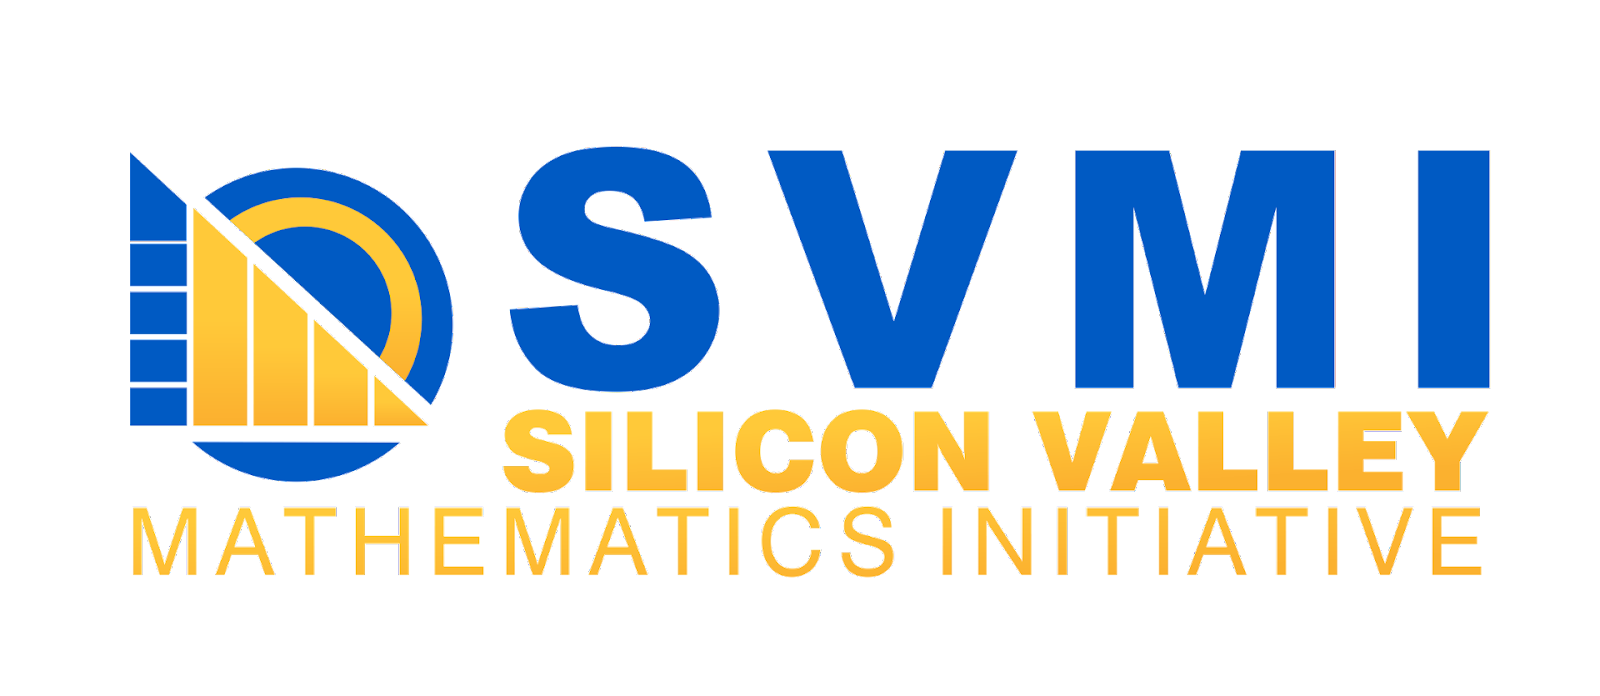 Silicon Valley Math pic.png